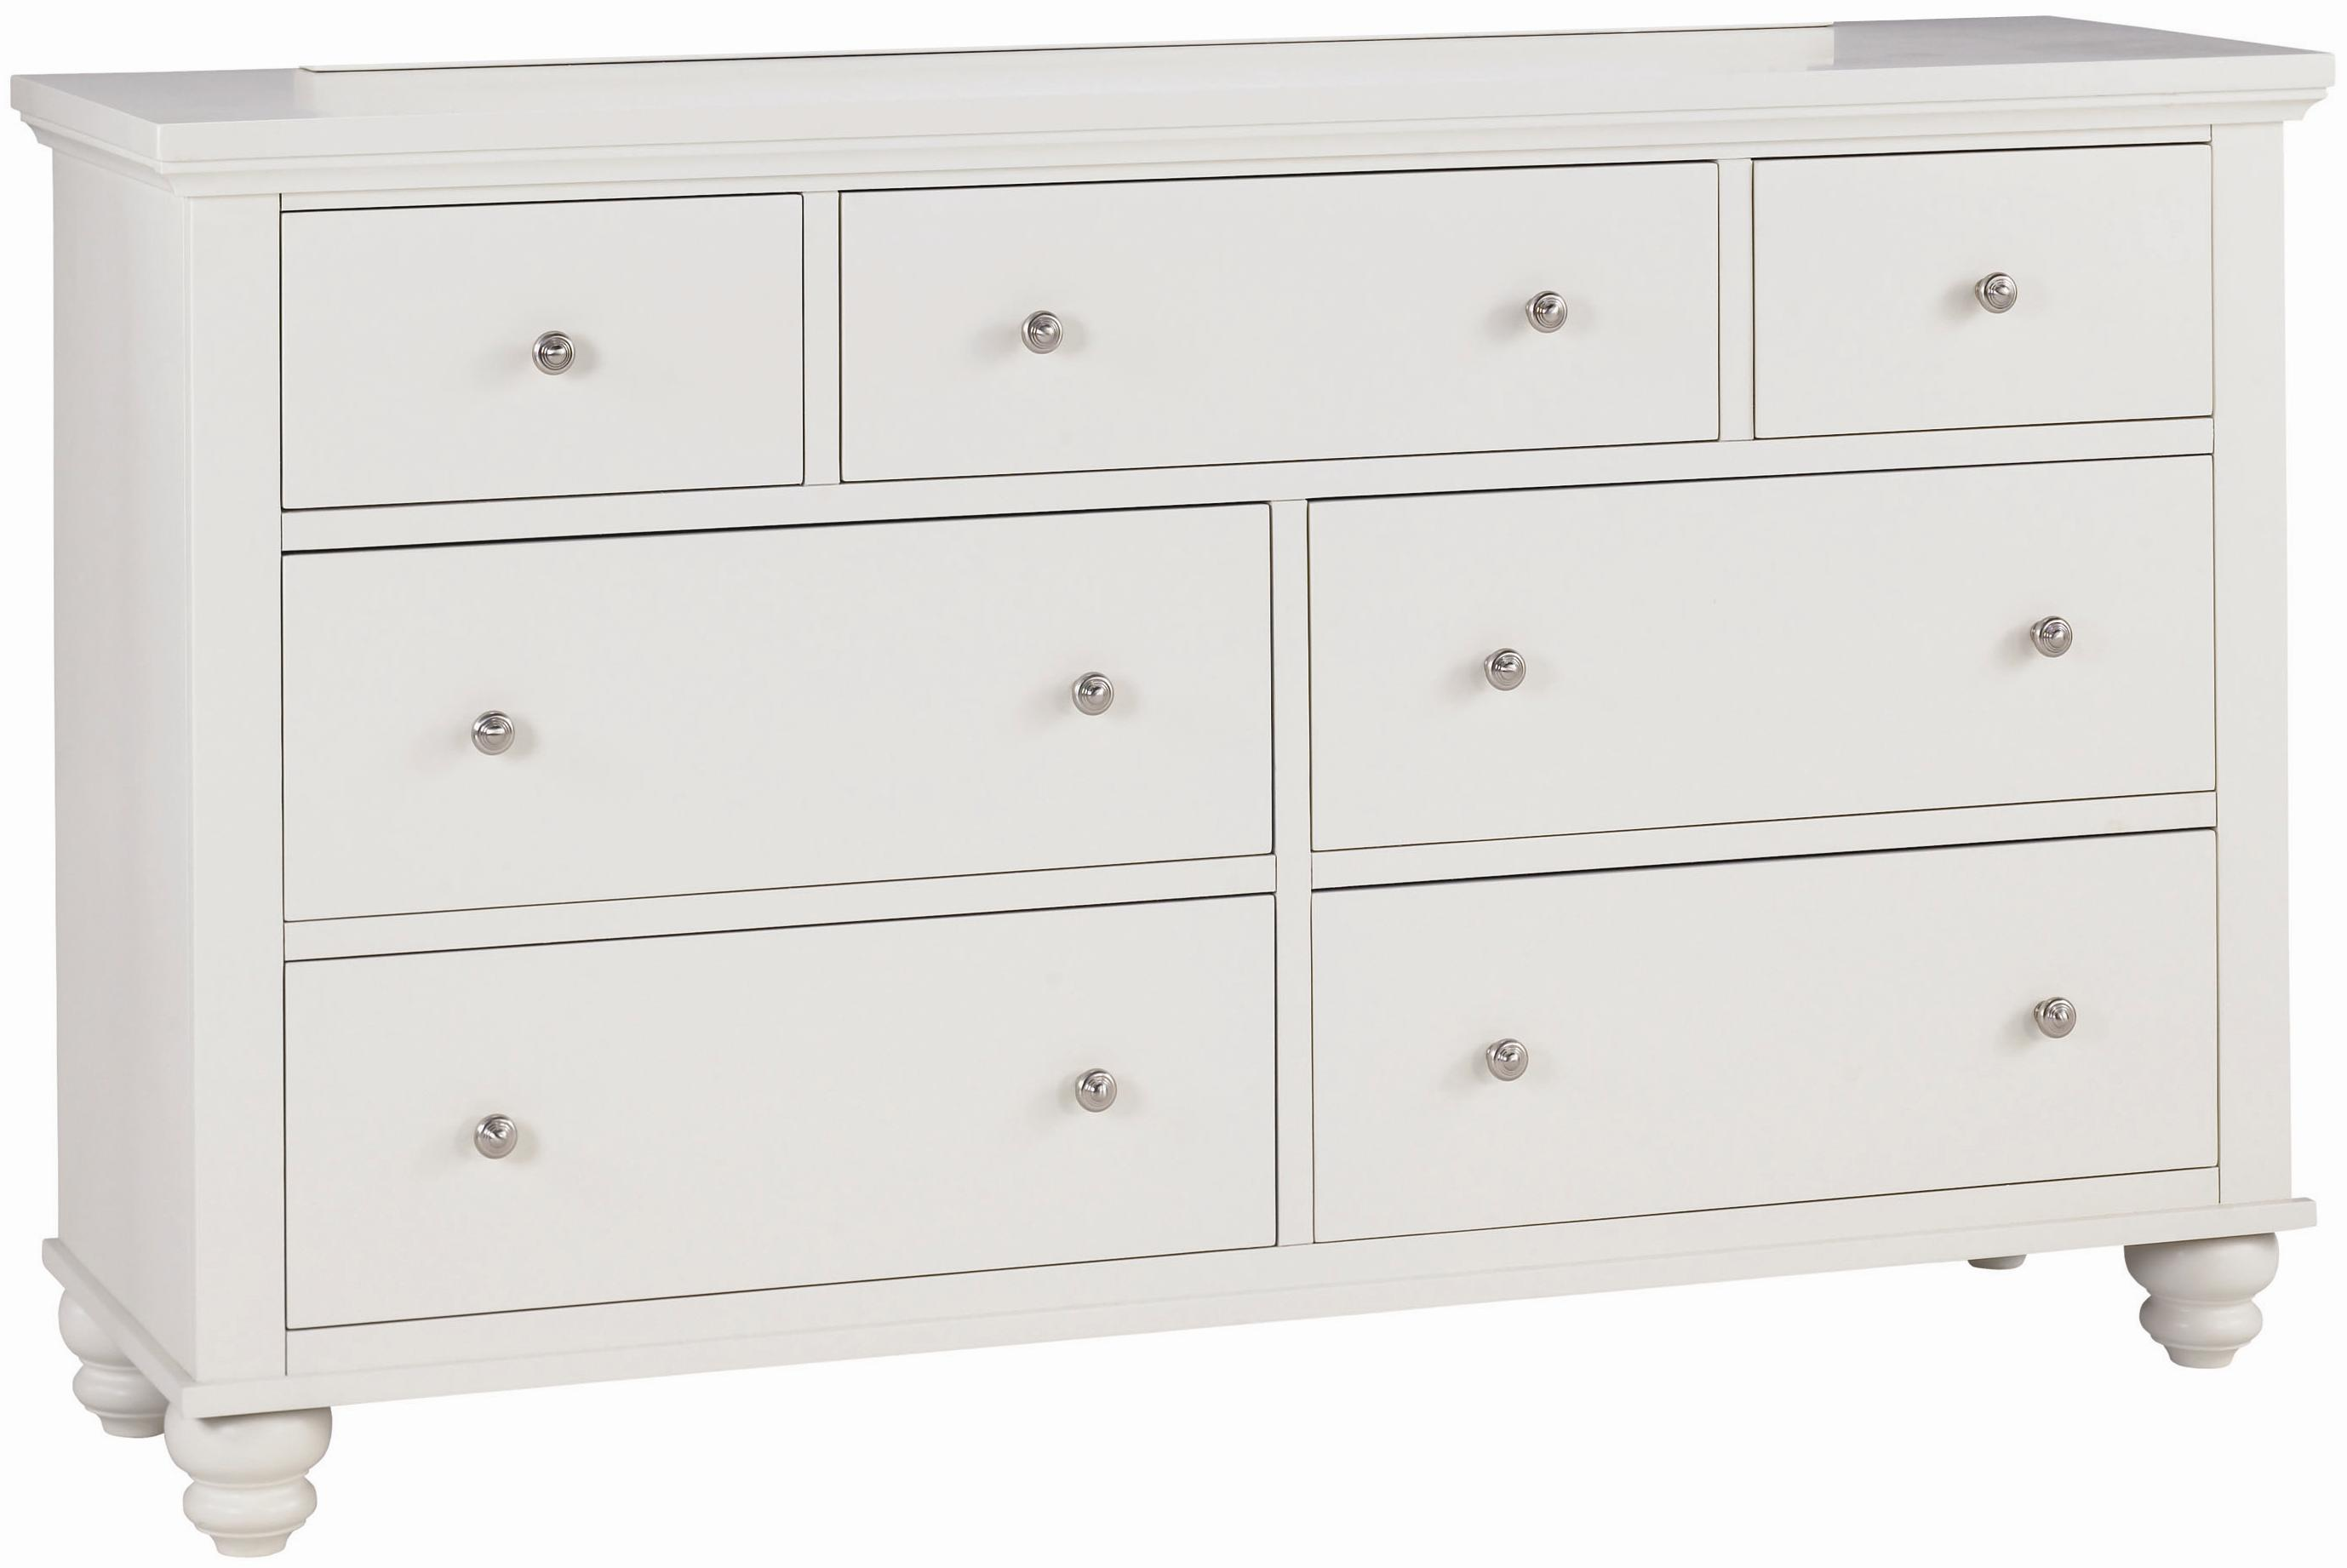 Aspenhome Cambridge Double Dresser - Item Number: ICB-454-EGG